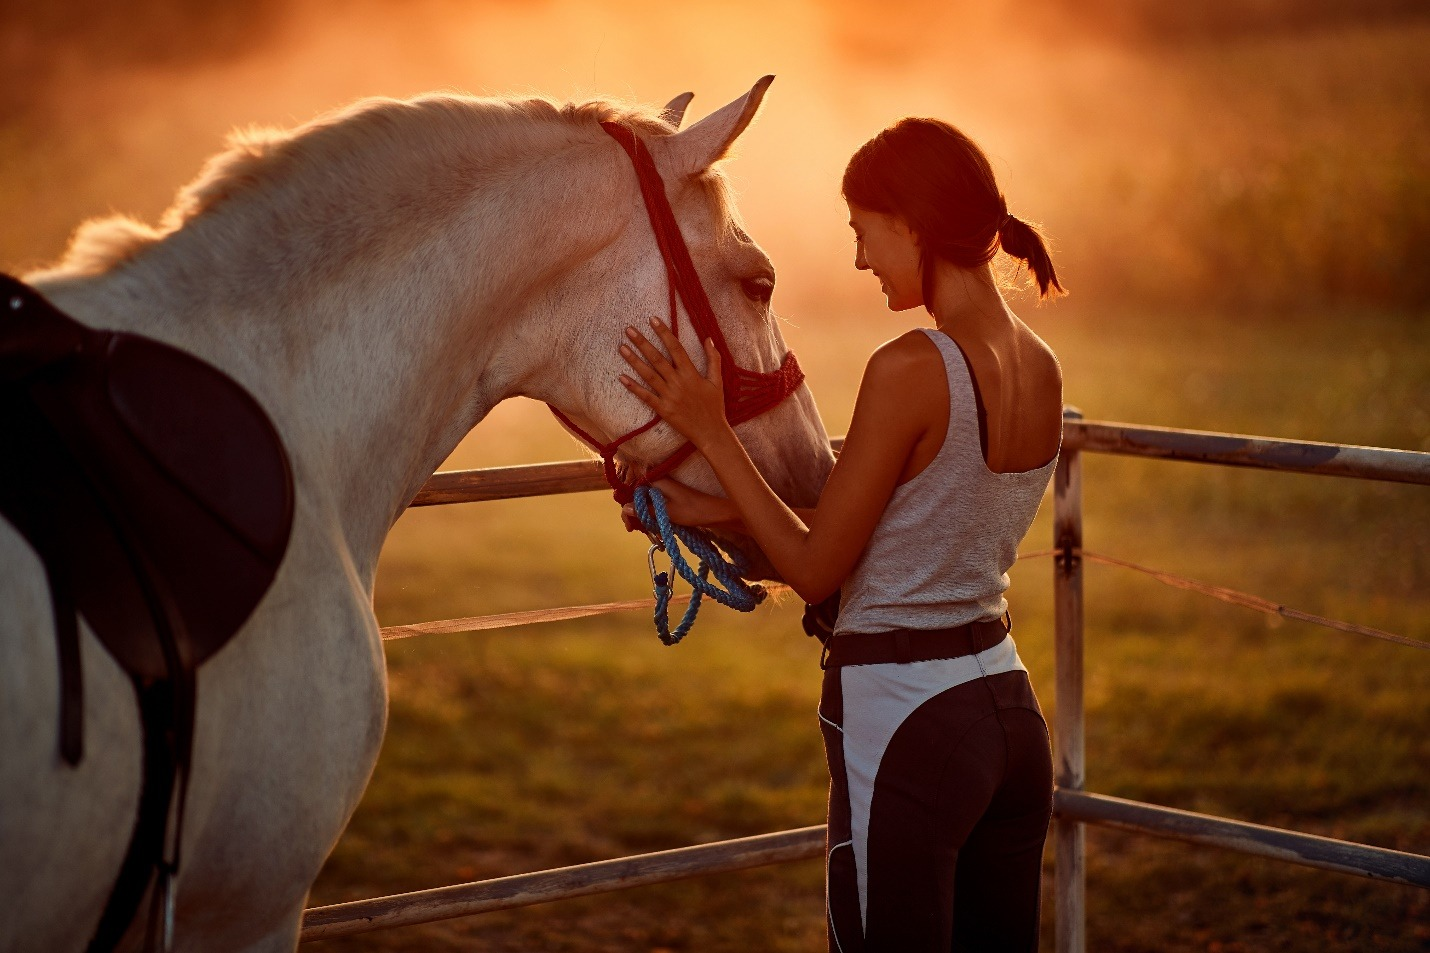 Smiling woman and her horse on a sunset.